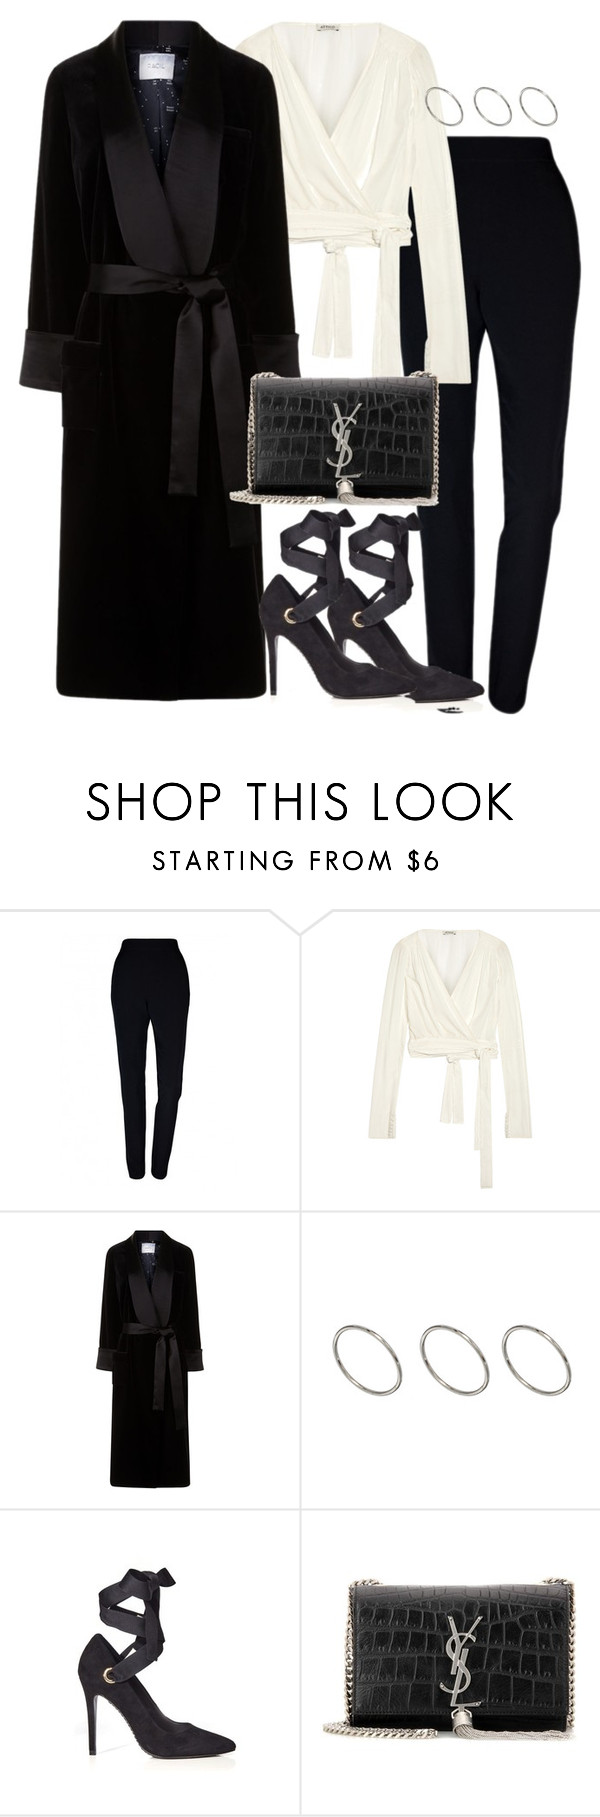 """""""Untitled #2845"""" by theeuropeancloset ❤ liked on Polyvore featuring Plakinger, Attico, Racil, ASOS, Alice + Olivia and Yves Saint Laurent"""